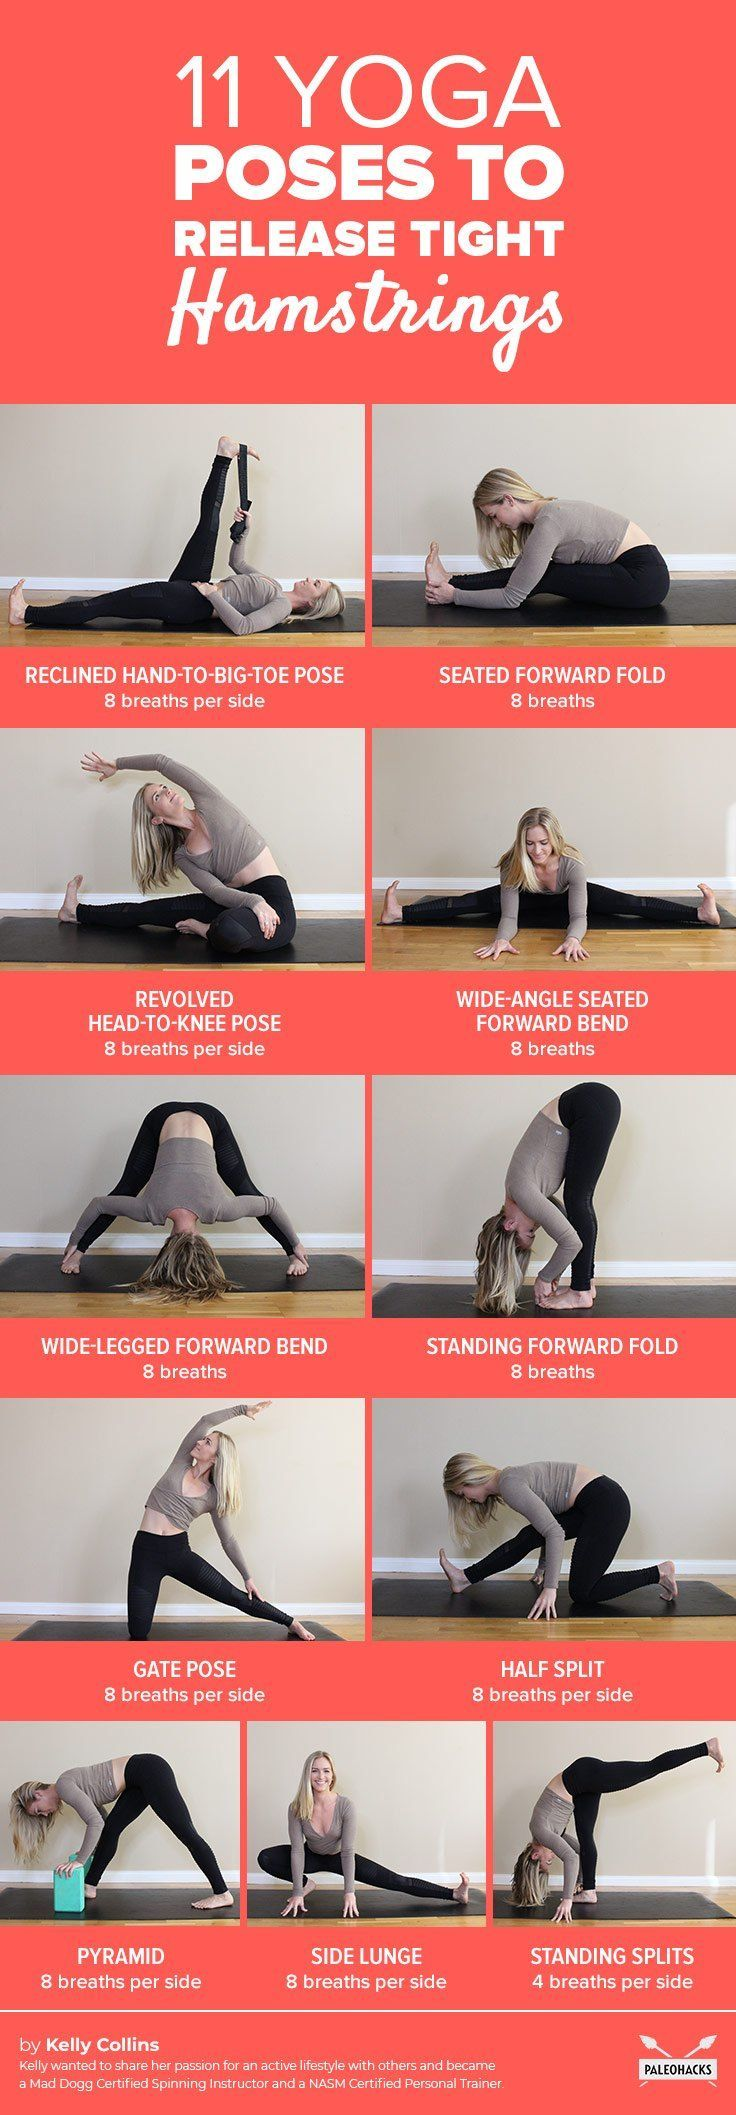 This Gentle Yoga Sequence Will Give You the Deepest Stretch in Your Hamstrings Yet